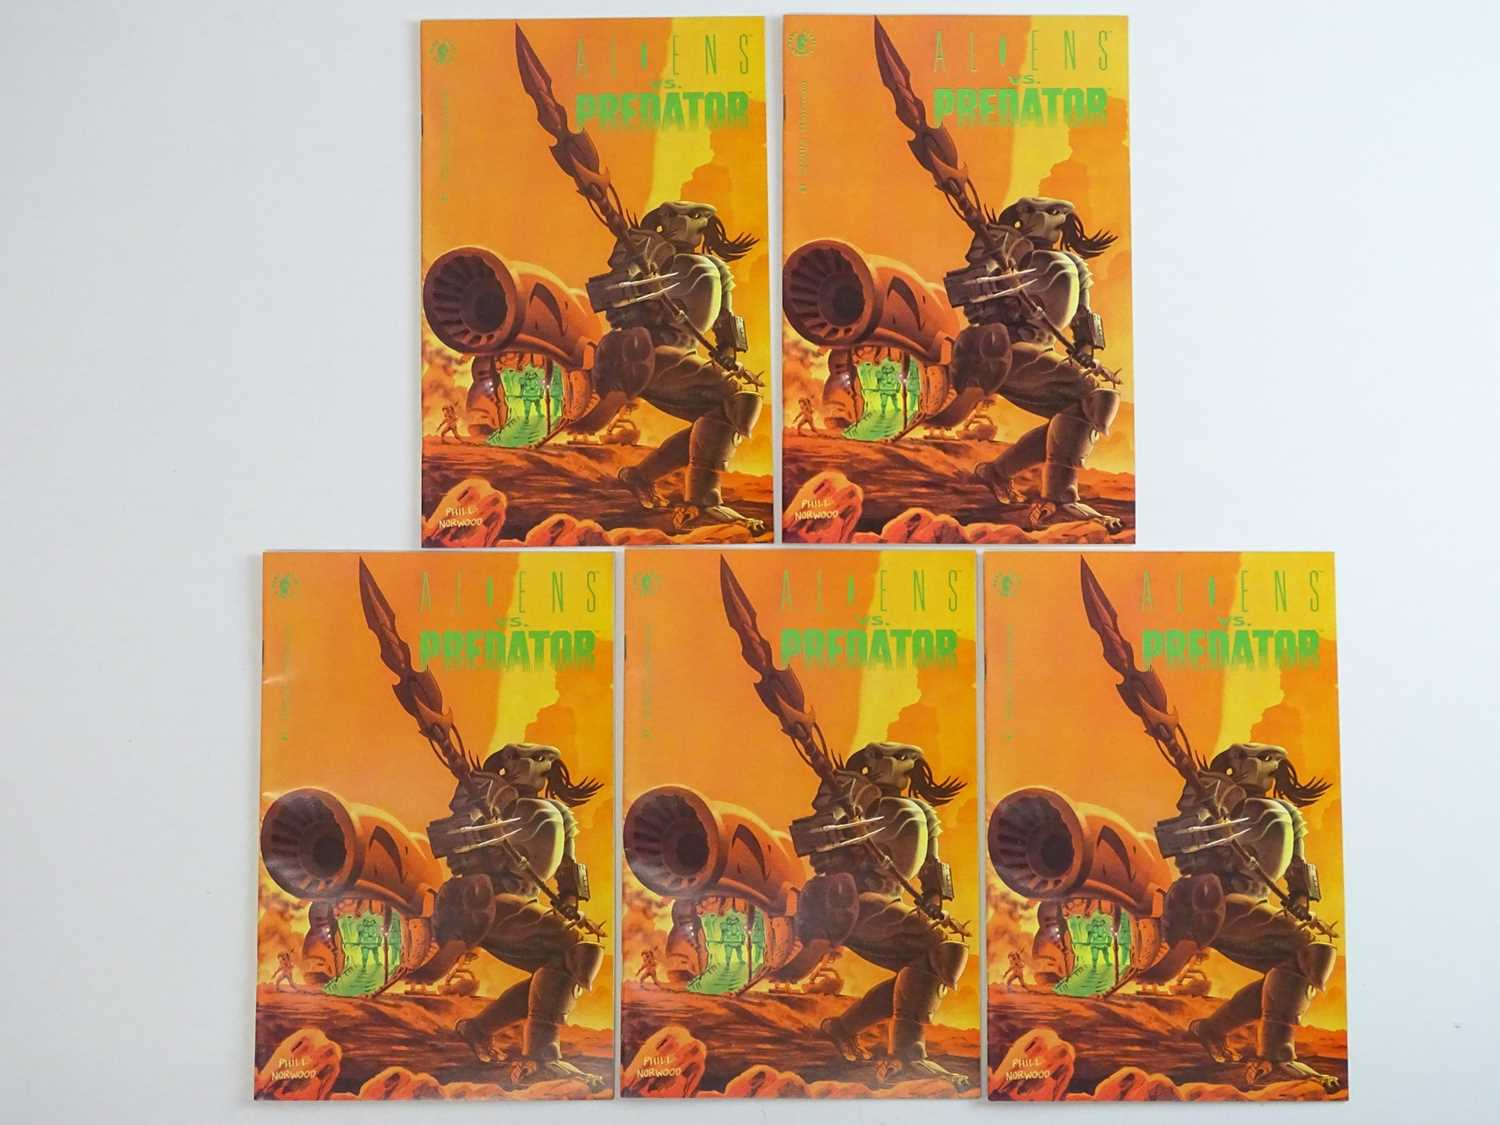 ALIENS VS PREDATOR #1 - (5 in Lot) - (1990 - DARK HORSE) - First Printing - Five (5) #1 issues for